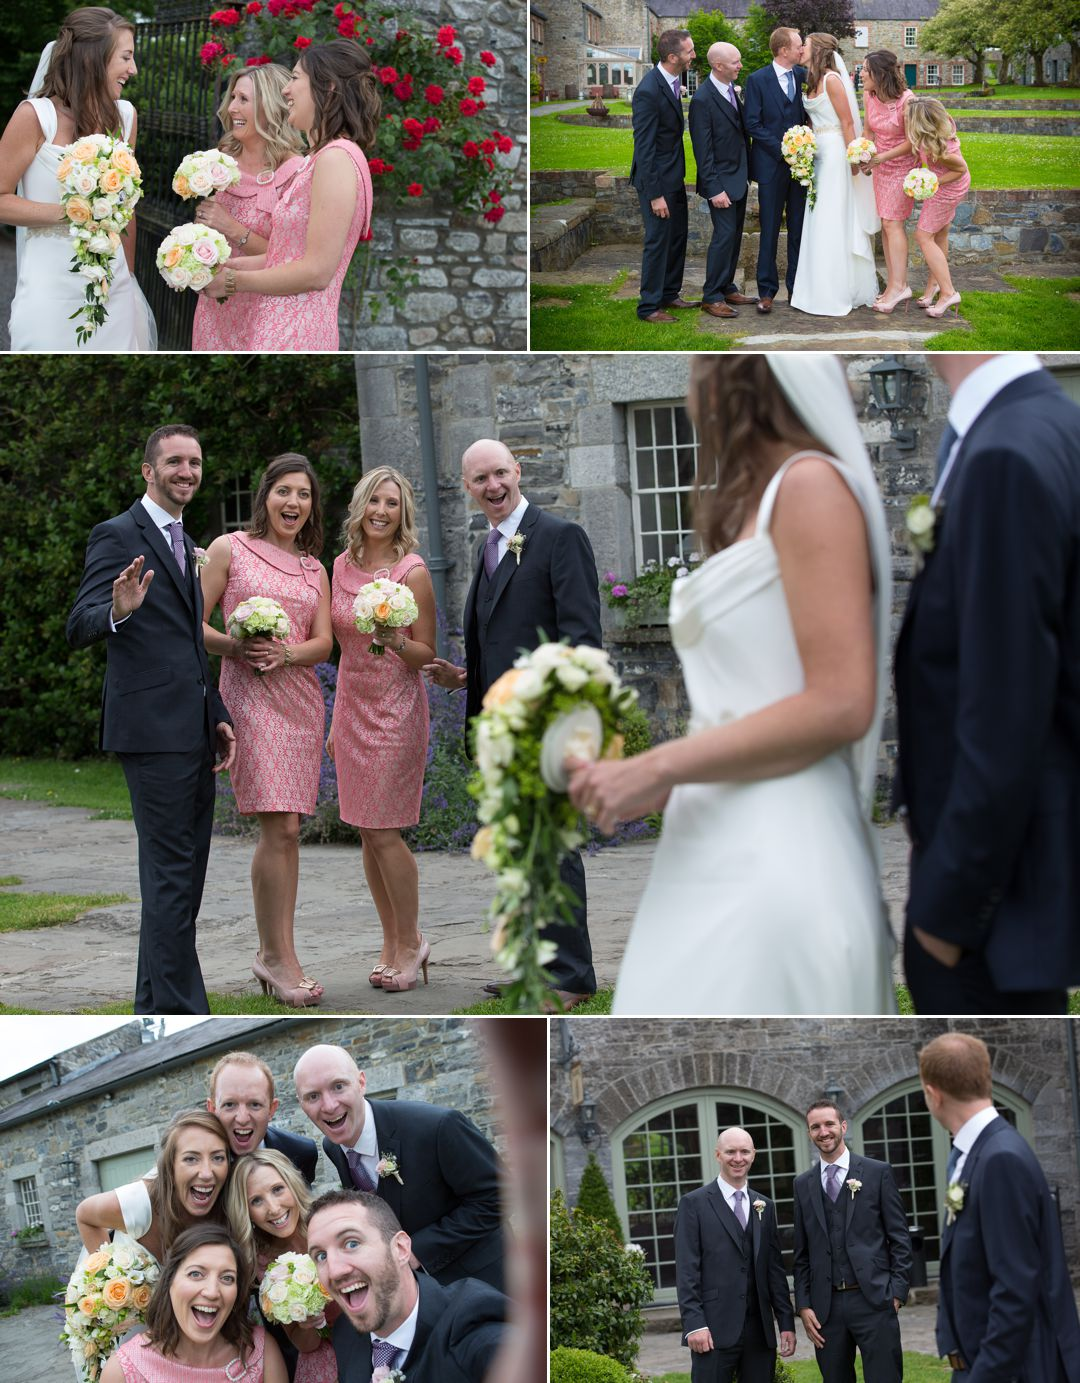 14 June 2014 / Ballymacgarvey Village SINEAD & BRENDAN number 8